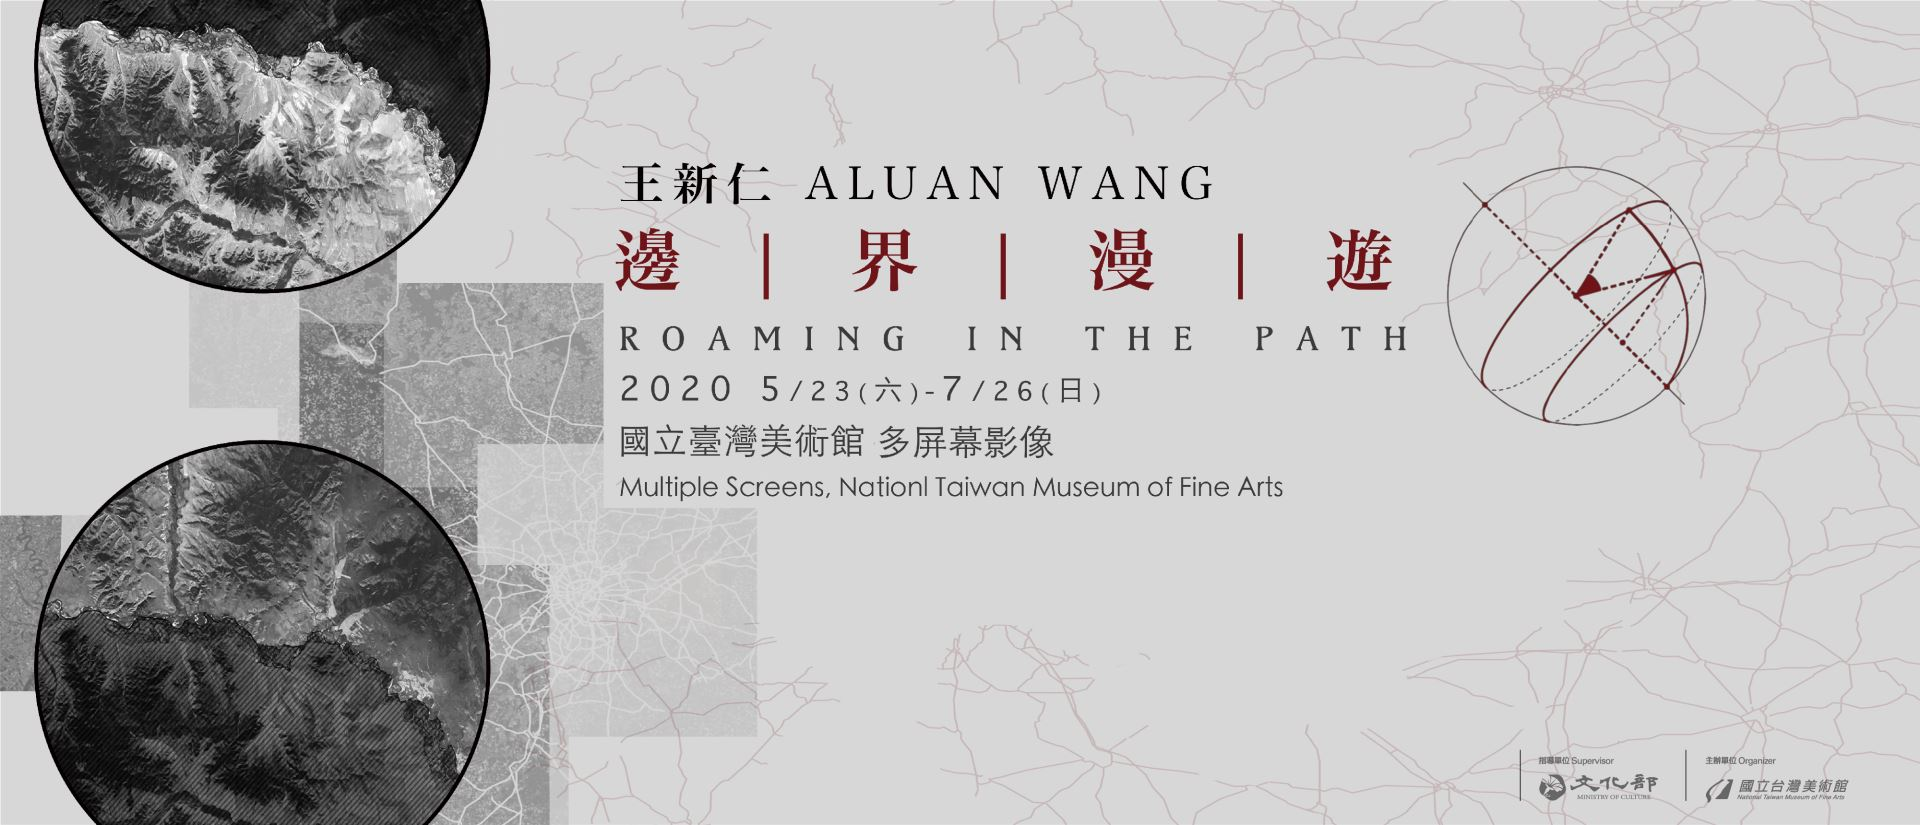 Aluan Wang : Roaming in the Pathopennewwindow